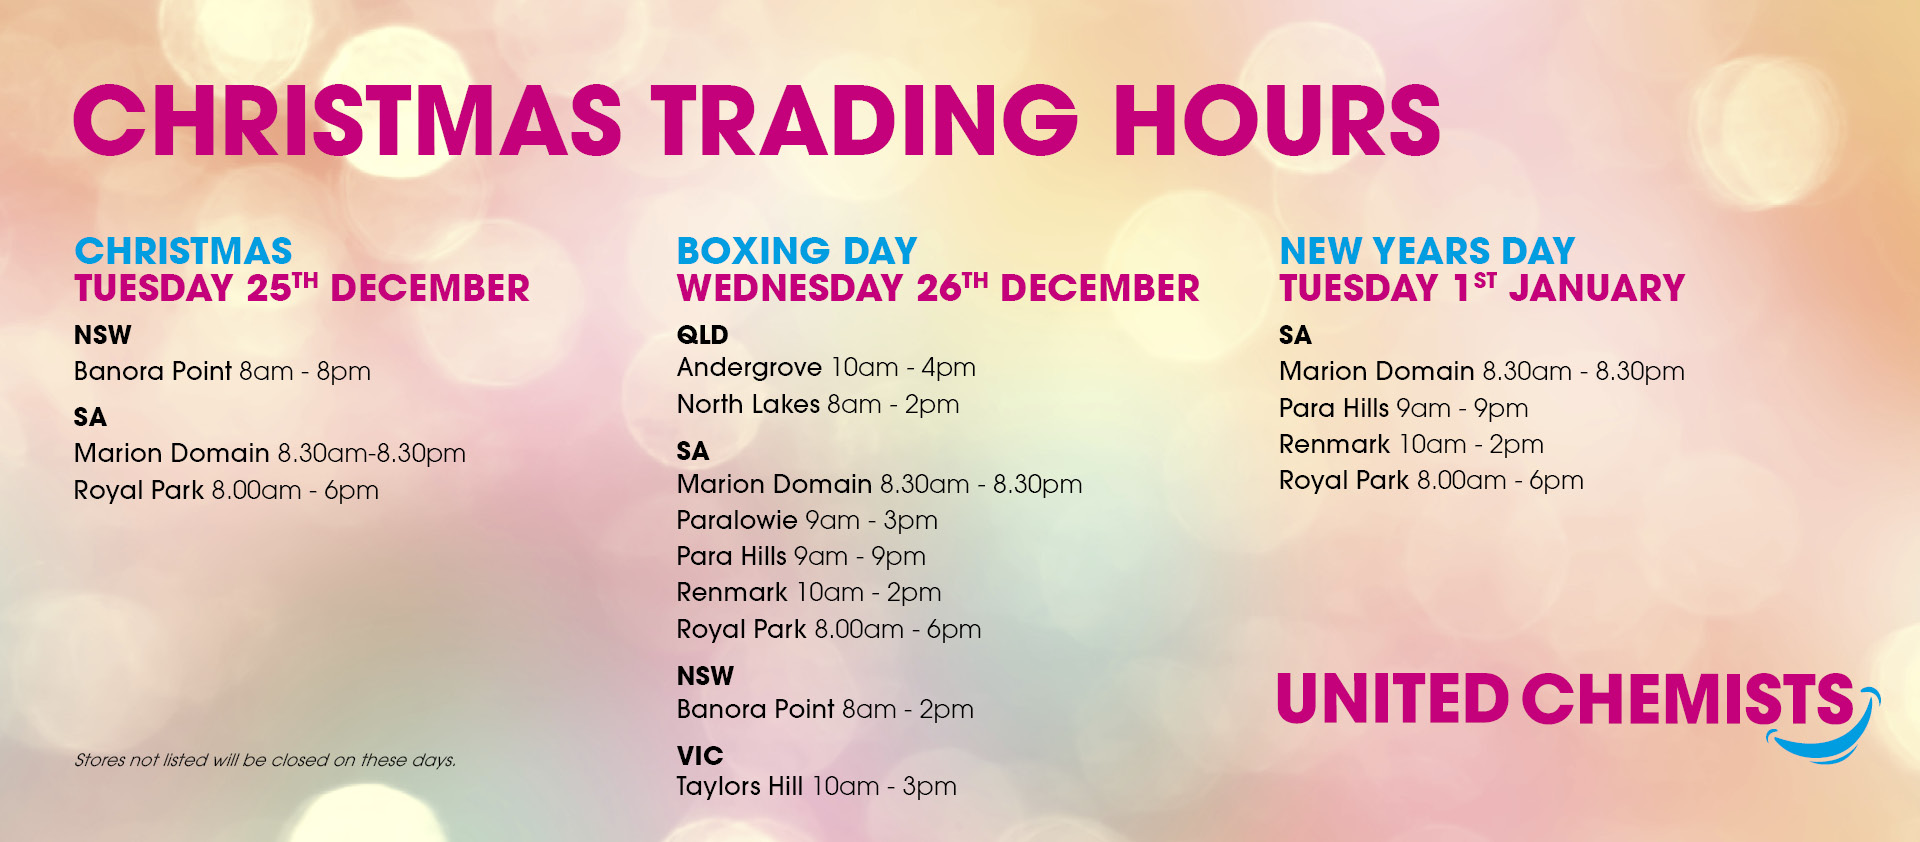 http://www.unitedchemists.net.au/libraries/images/catalogue-banners/Dec 2018 Holiday hours.jpg